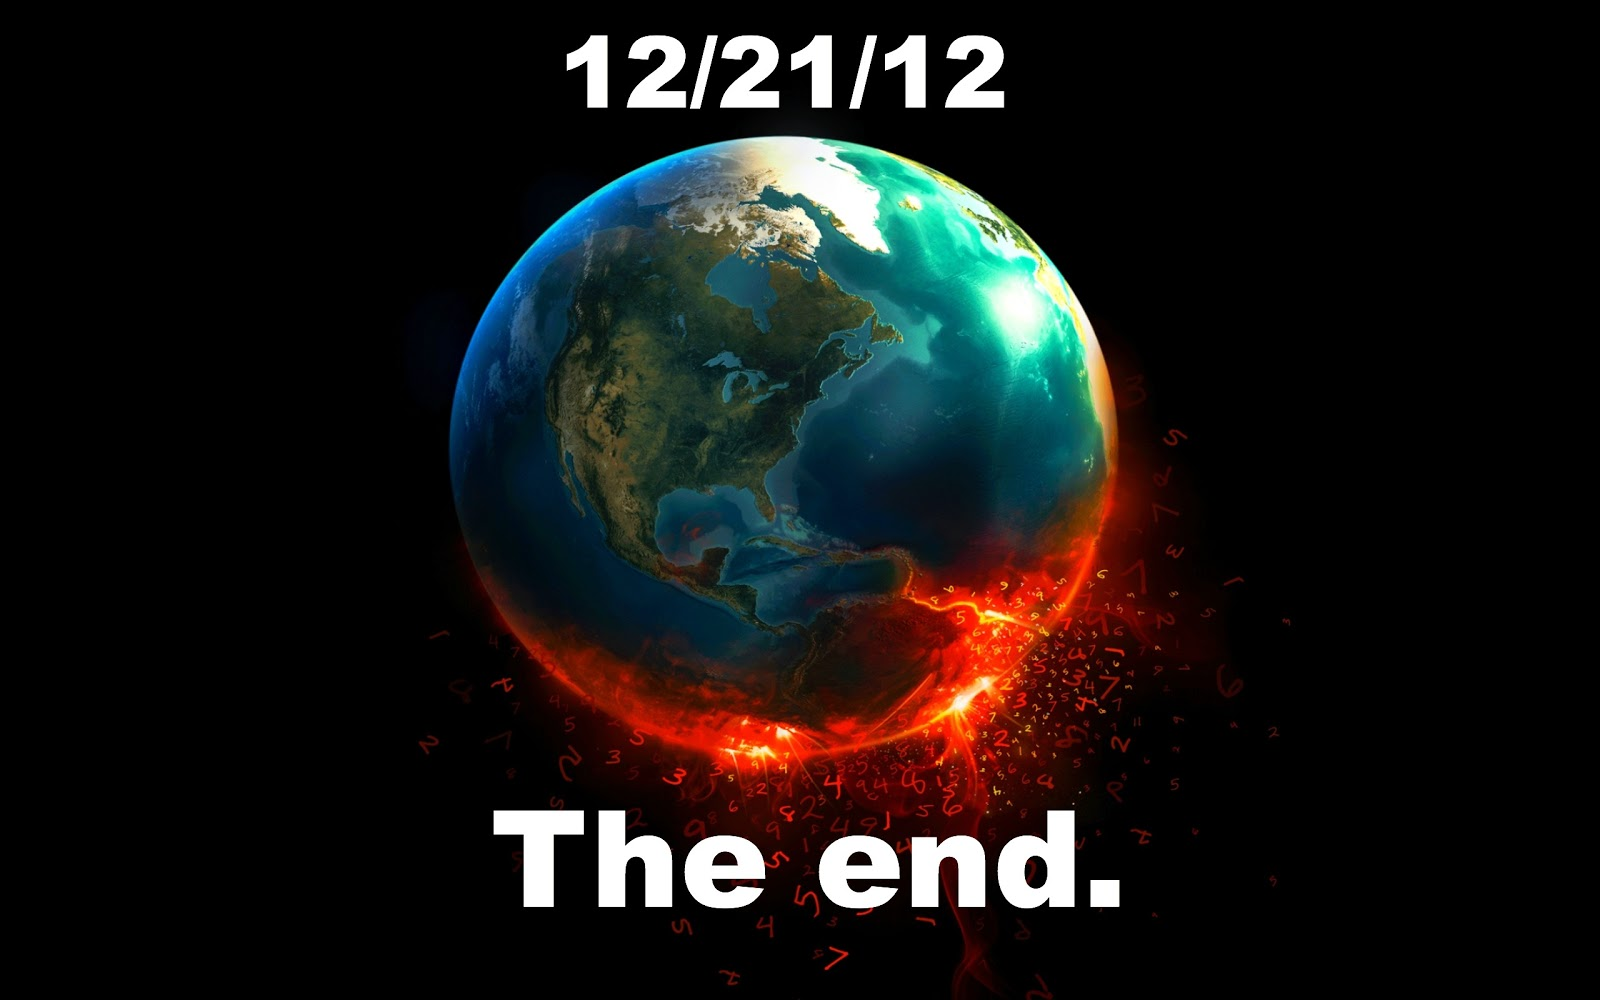 http://4.bp.blogspot.com/-Hu9eeJcZ3KI/UNNMBAn4P1I/AAAAAAAADKE/Ou_4udRm0XQ/s1600/THE_END_OF_THE_WORLD_2012_Wallpaper_2560x1600_wallpaperhere.jpg